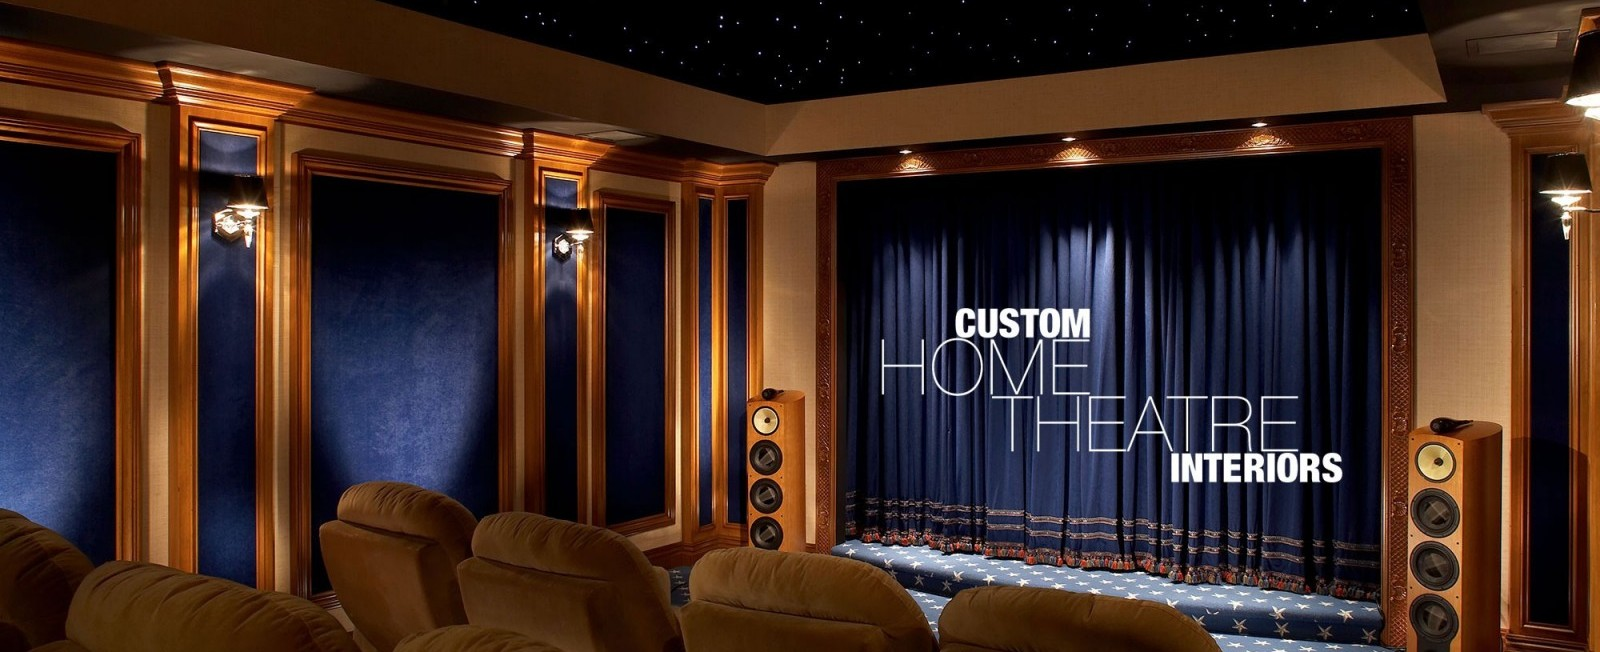 Custom Theatres AcousticSmart - Custom home interior design